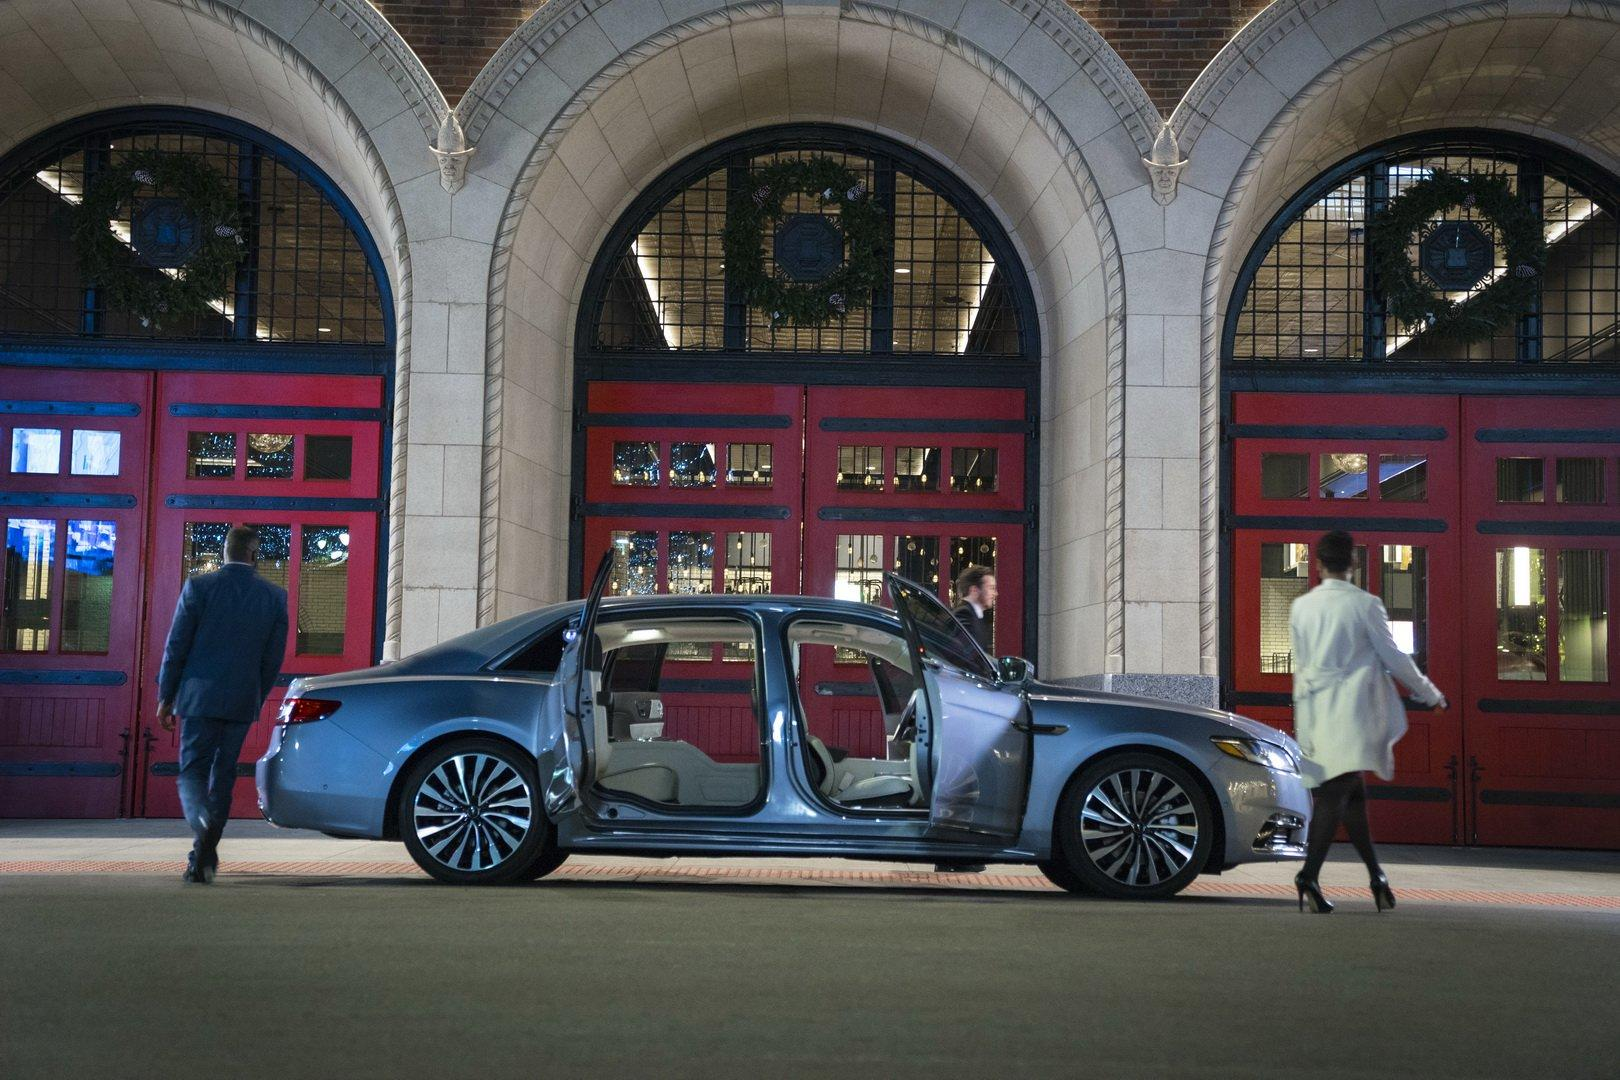 Lincoln Continental 80th Anniversary Coach Door Edition - Lincoln Continental 80th Anniversary Coach Door Edition